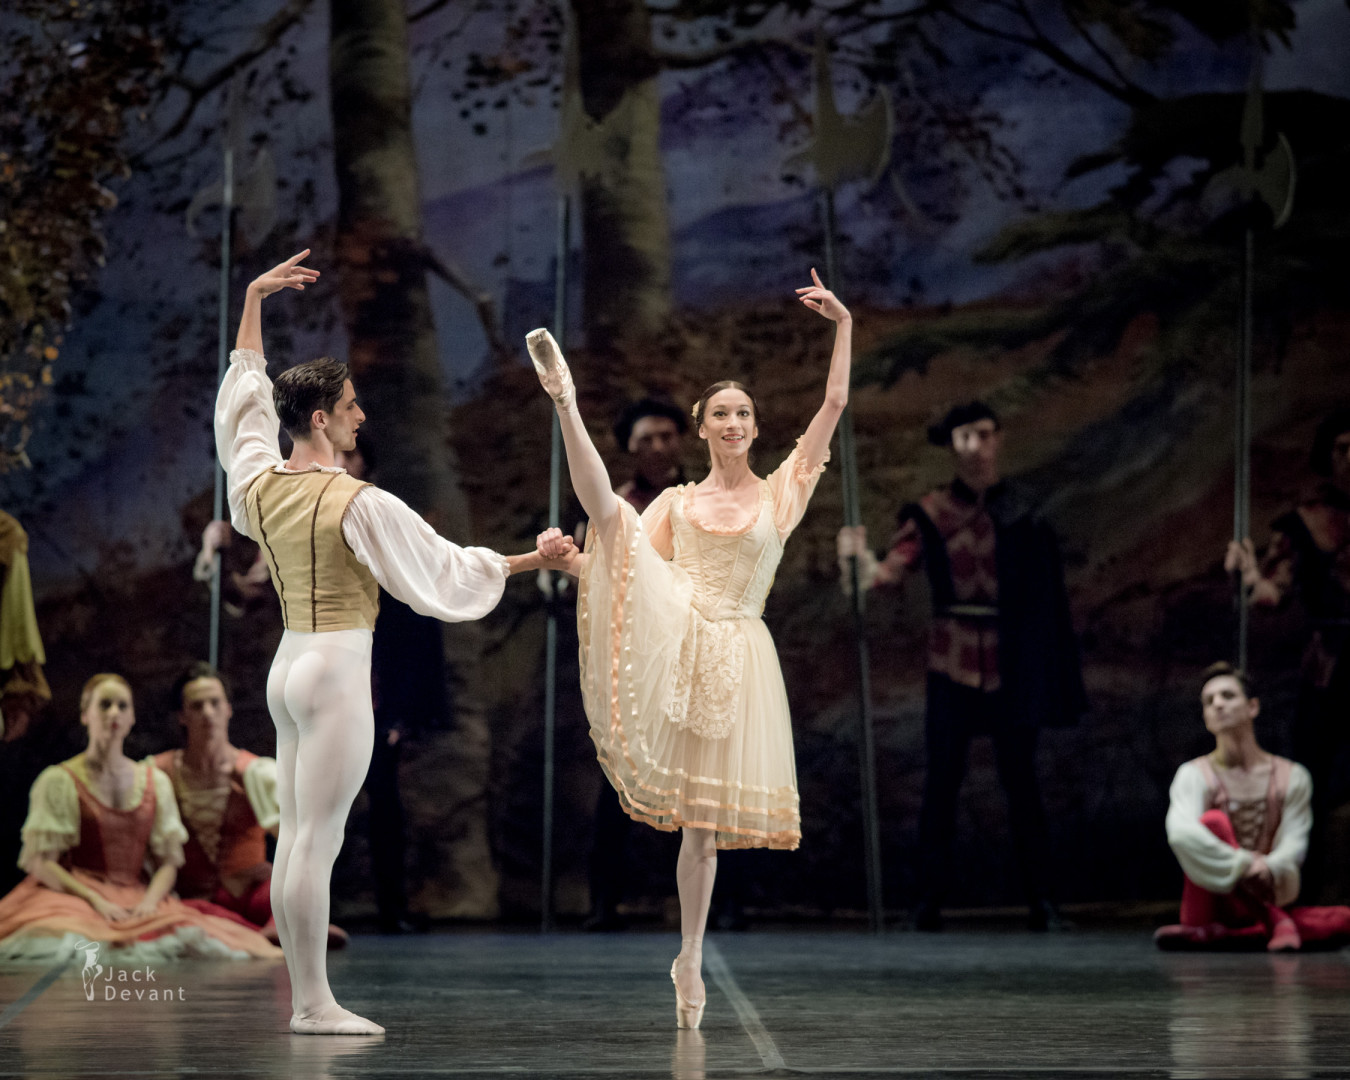 Sara Sancamillo and Stanislao Capissi in Peasant pdd in Giselle